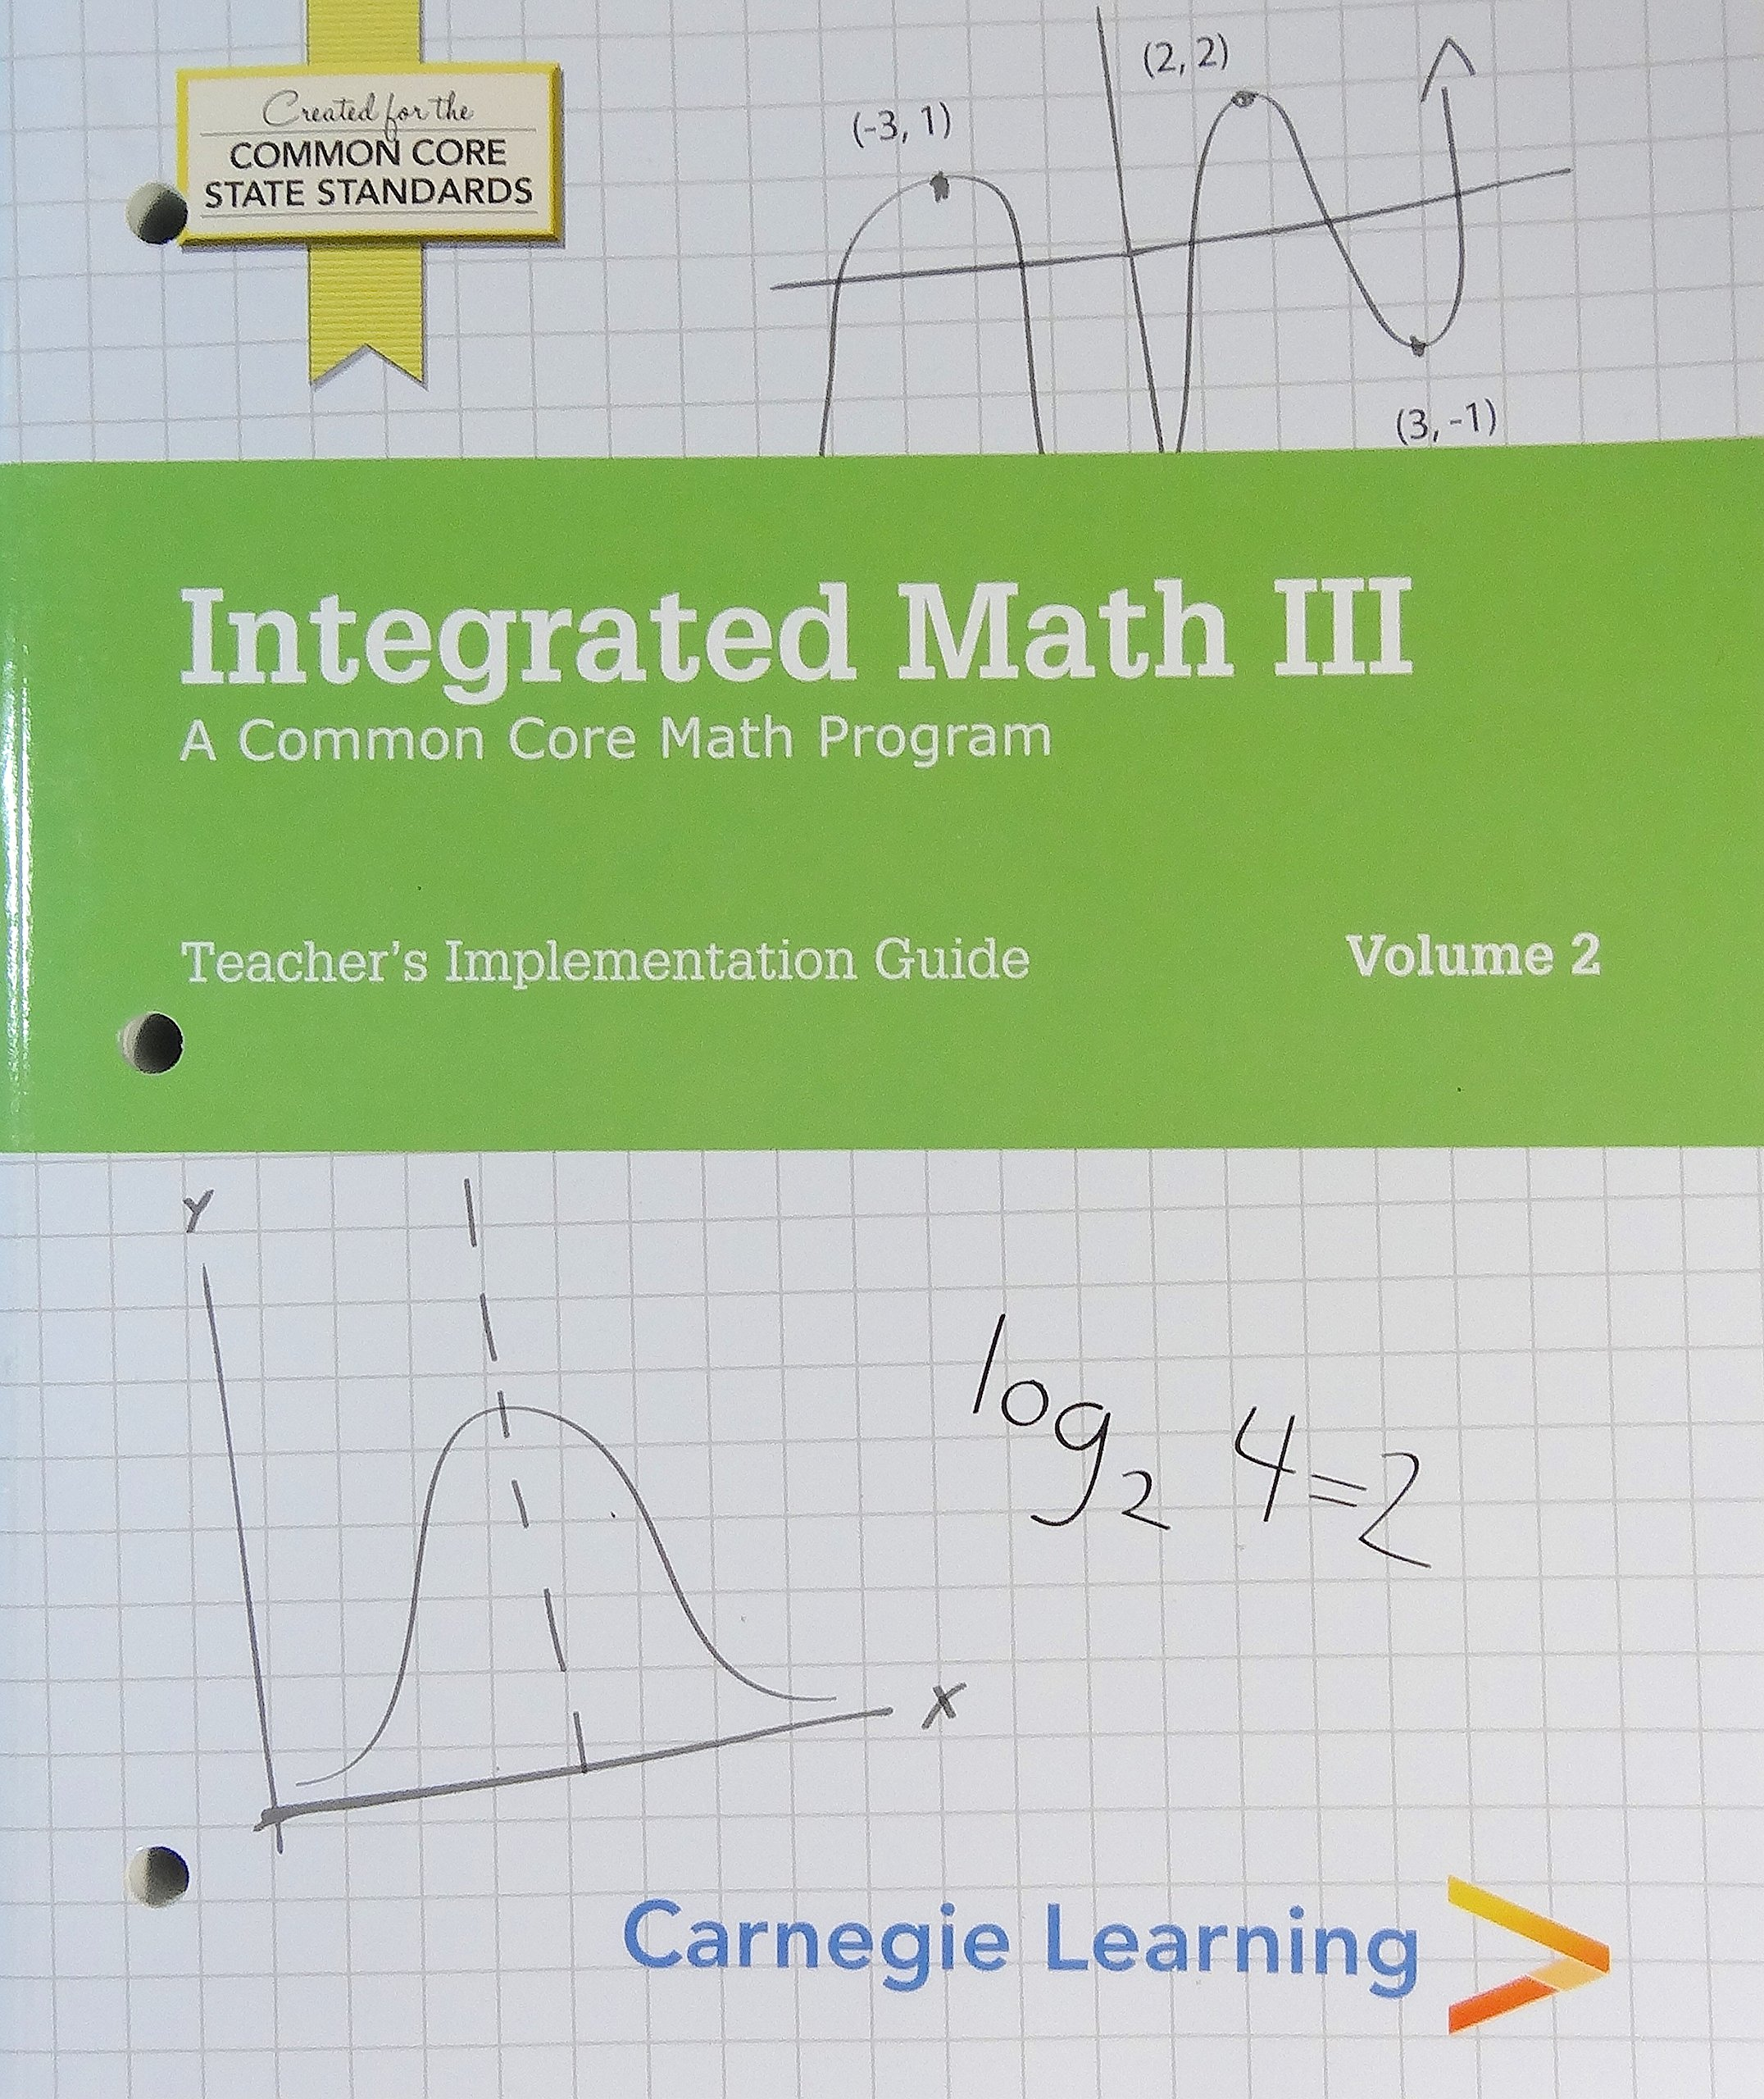 Carnegie Learning - Integrated Math III: A Common Core Math